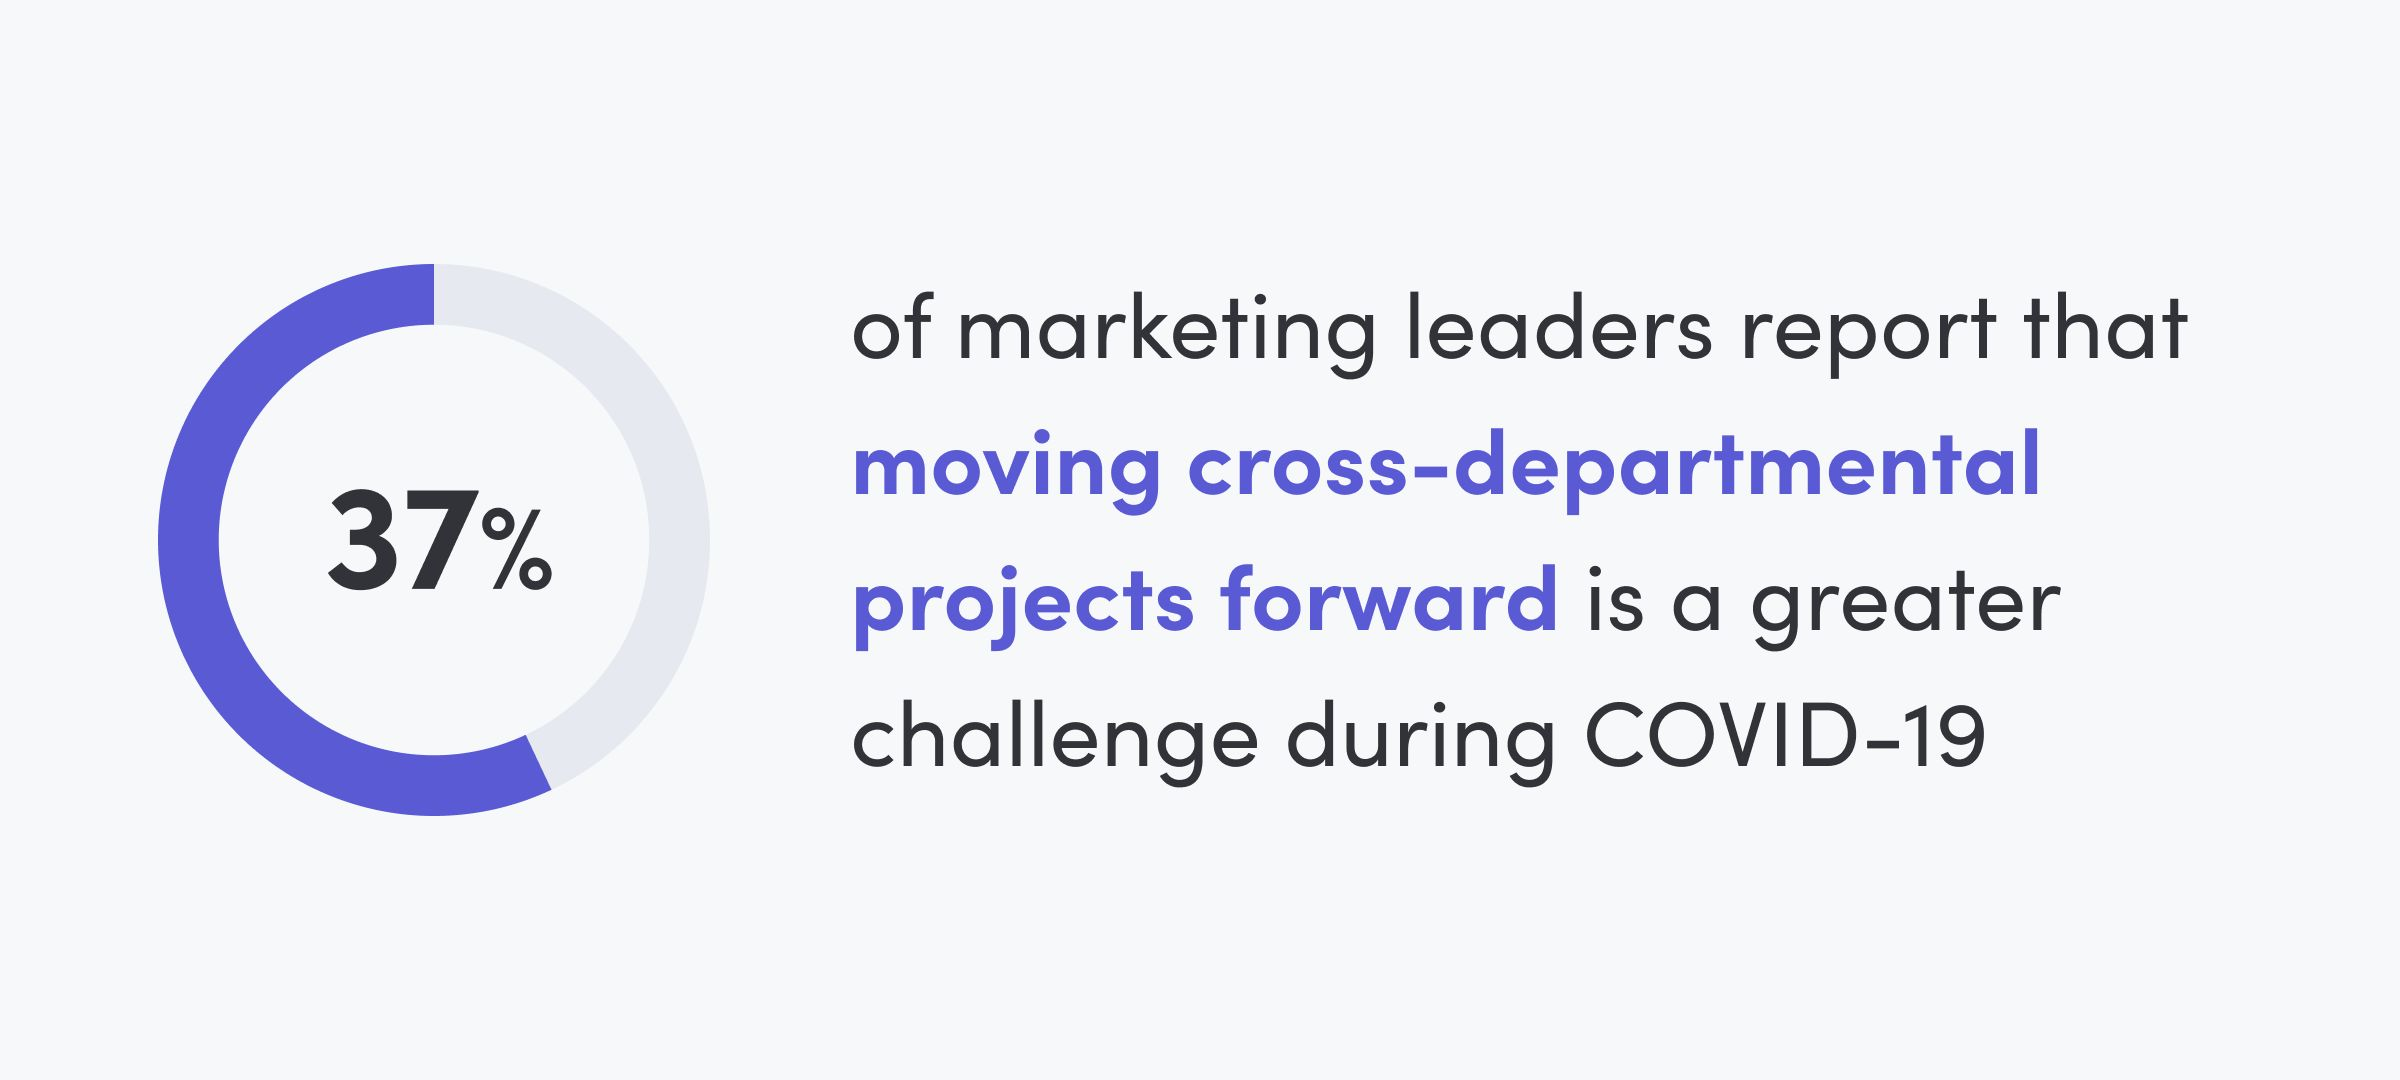 Crisis marketing: Cross-departmental projects